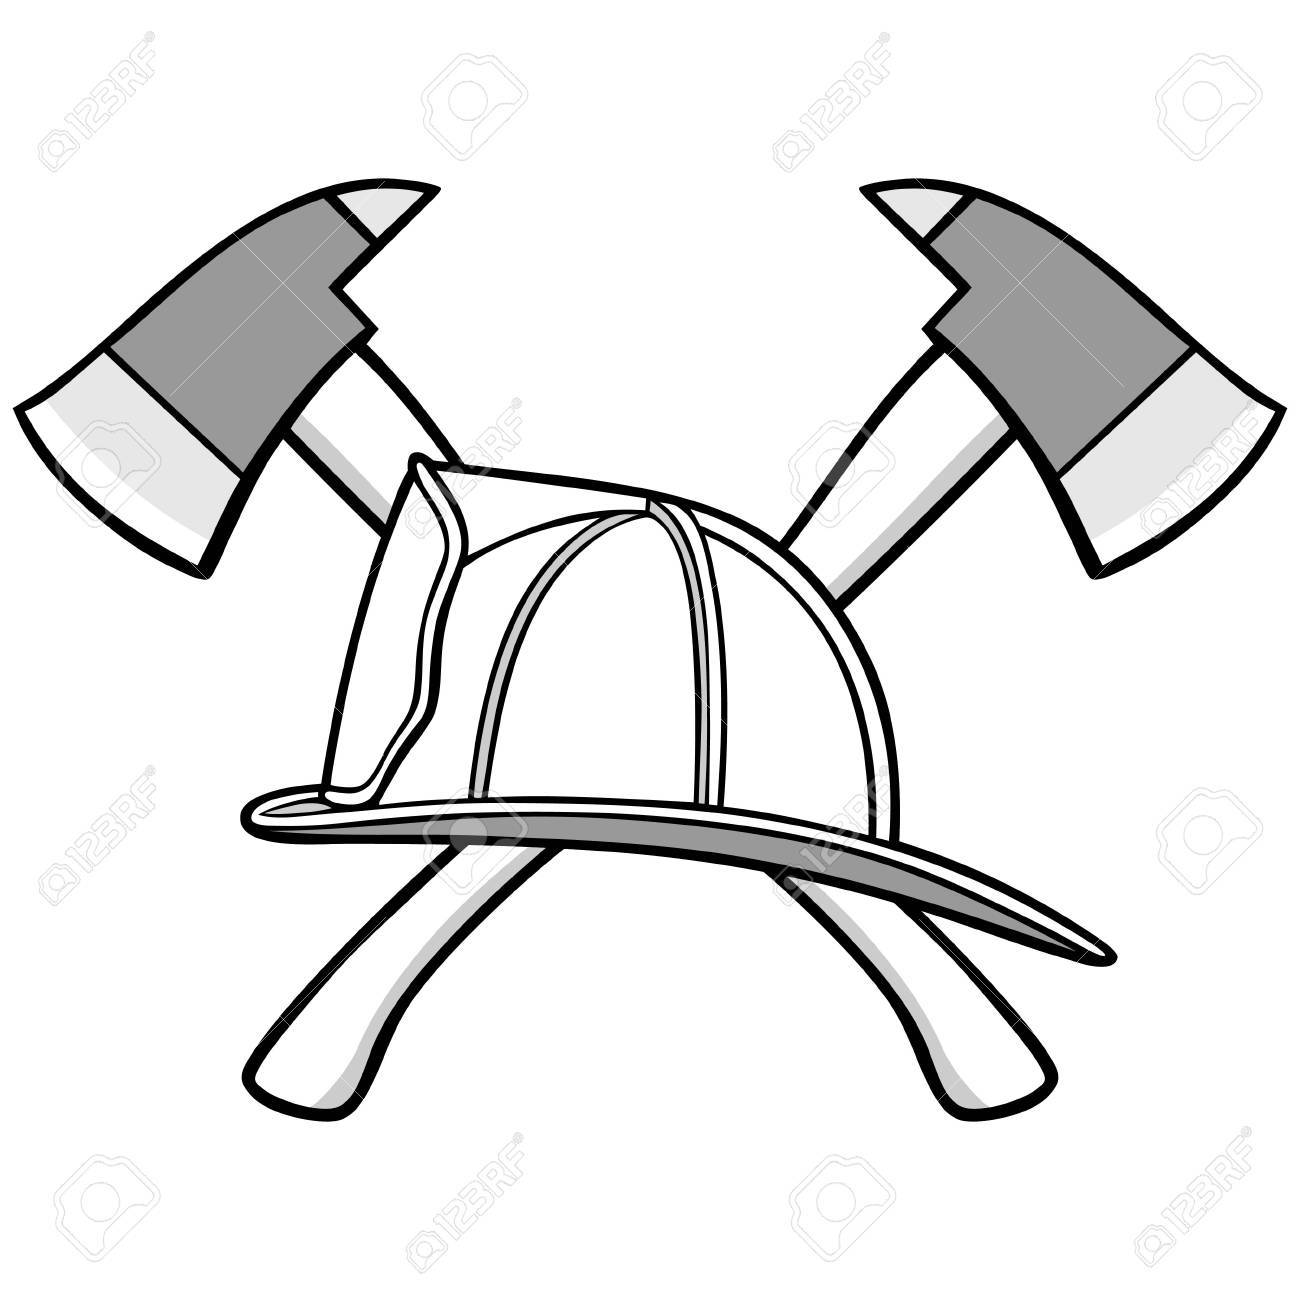 1300x1300 Firefighter Helmet And Axes Illustration Royalty Free Cliparts